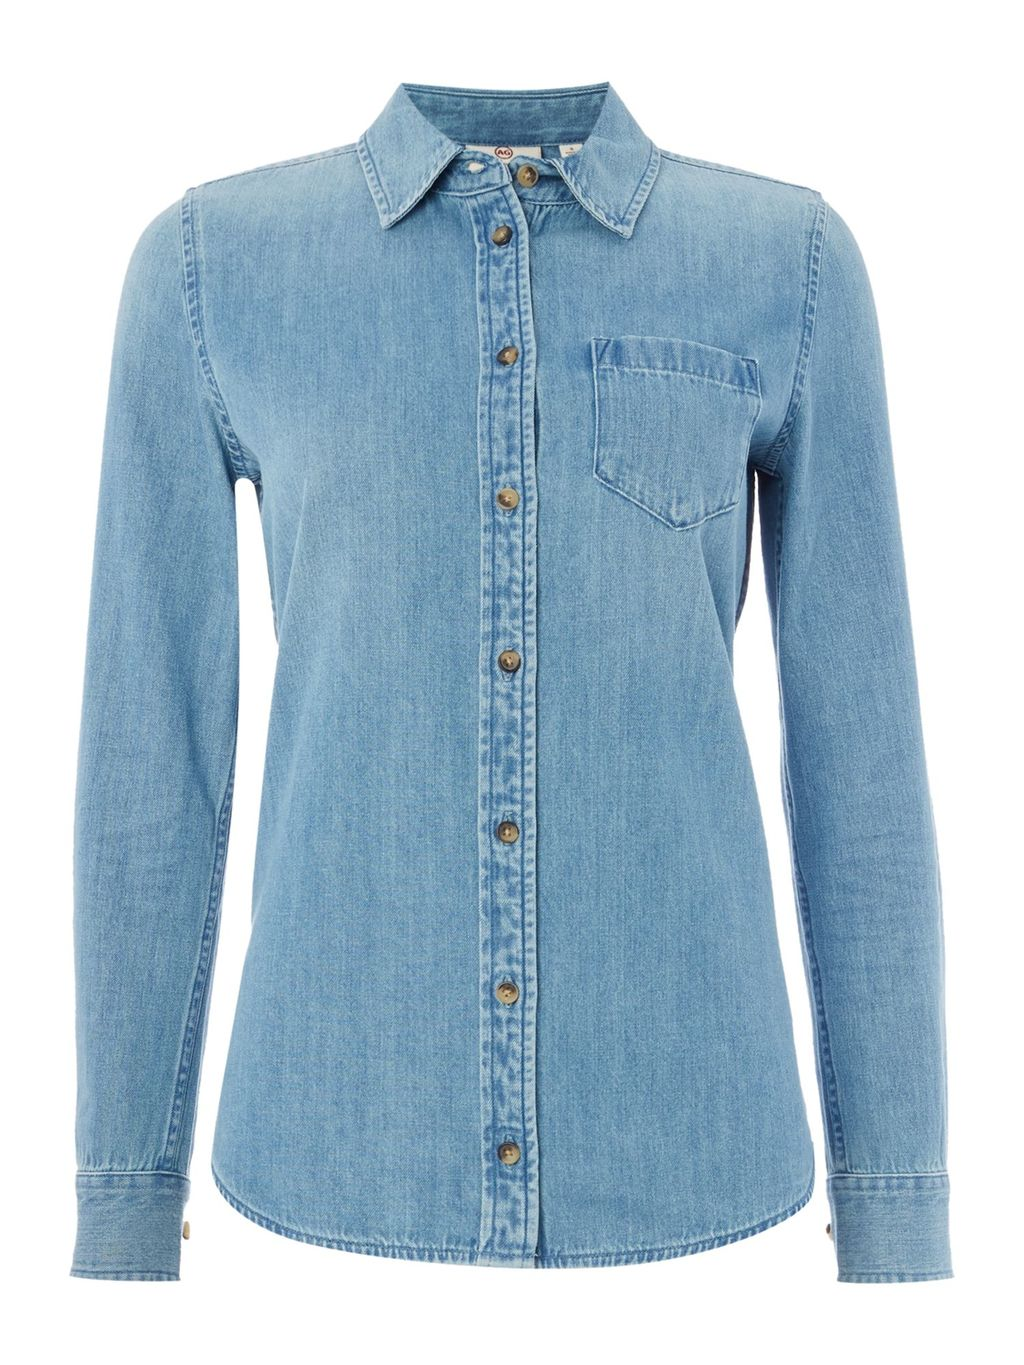 The Easton Denim Shirt In Blue Light, Light Blue - neckline: shirt collar/peter pan/zip with opening; pattern: plain; style: shirt; bust detail: pocket detail at bust; predominant colour: denim; occasions: casual, creative work; length: standard; fibres: cotton - 100%; fit: body skimming; sleeve length: long sleeve; sleeve style: standard; texture group: denim; pattern type: fabric; season: s/s 2016